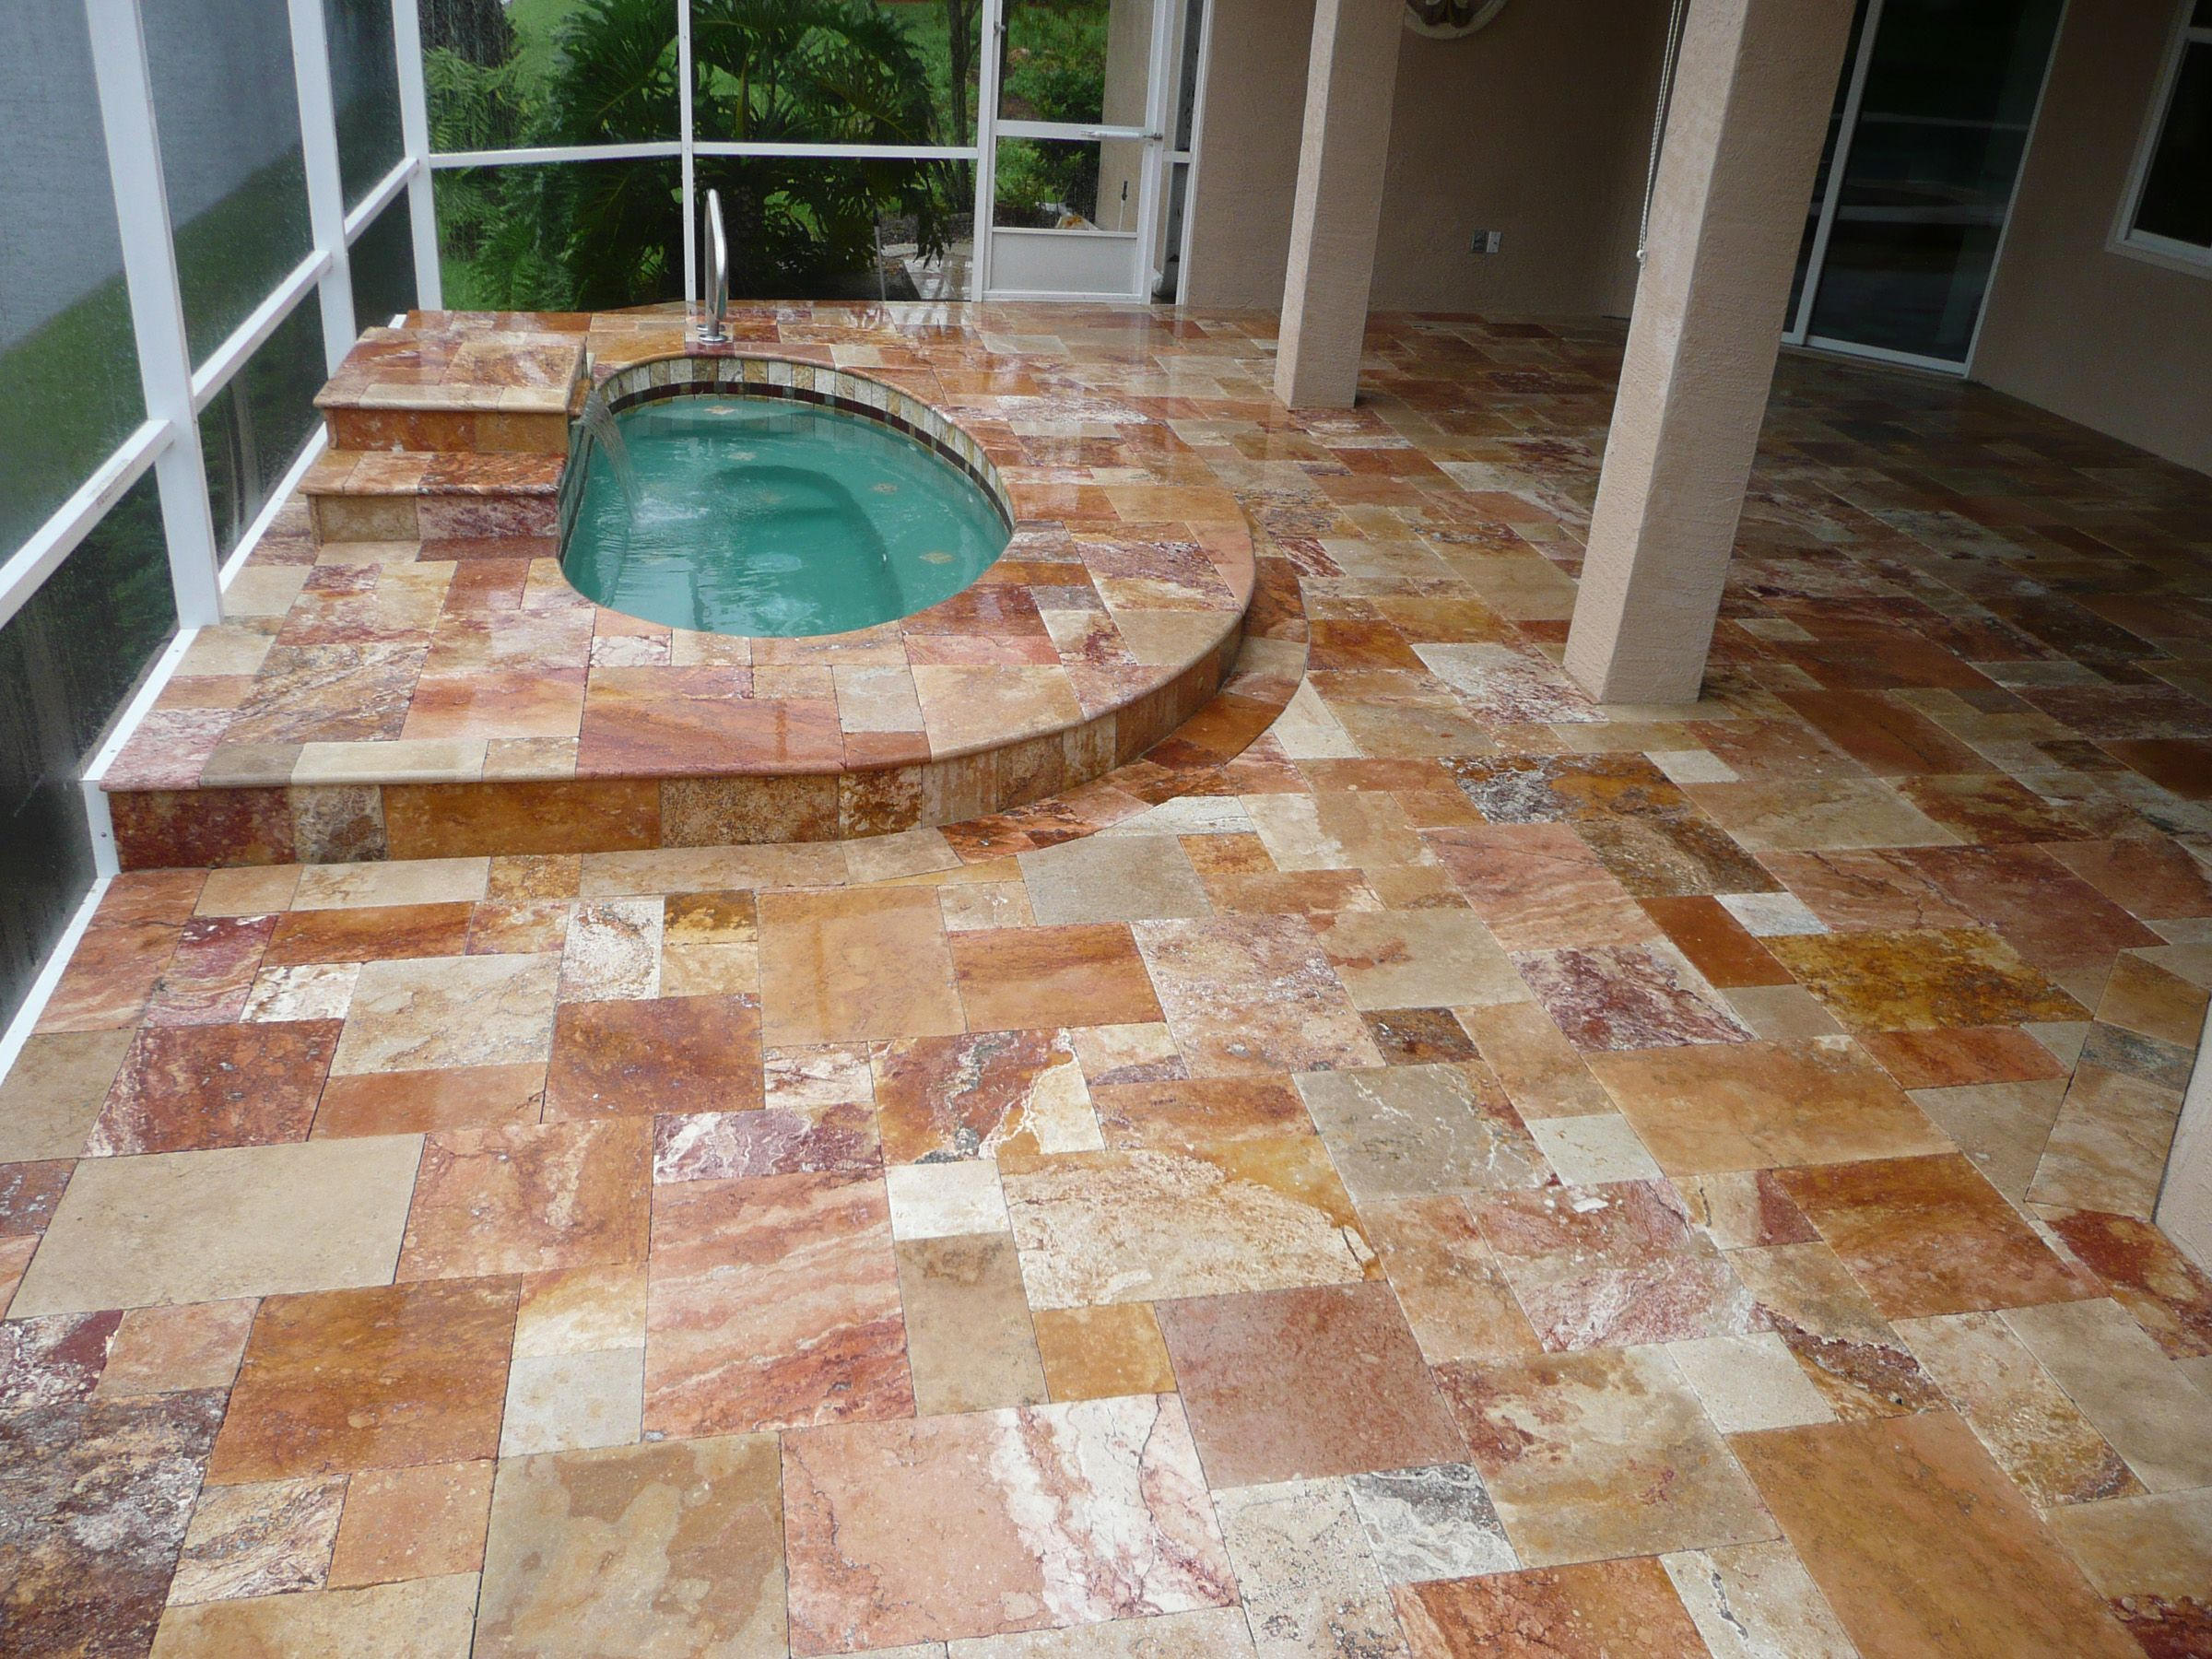 autumn blend travertine pavers in a french pattern design. www